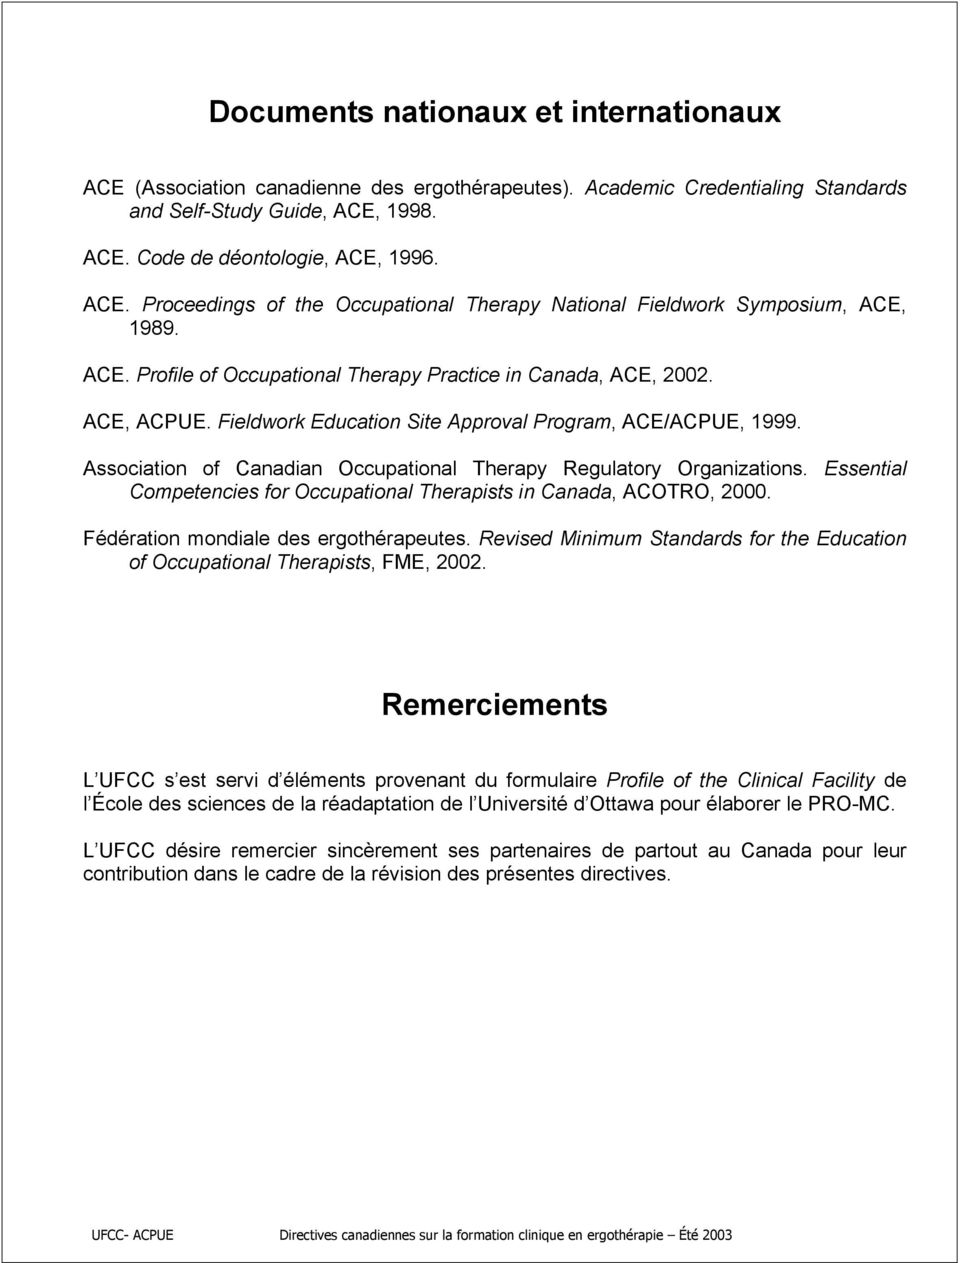 Association of Canadian Occupational Therapy Regulatory Organizations. Essential Competencies for Occupational Therapists in Canada, ACOTRO, 2000. Fédération mondiale des ergothérapeutes.